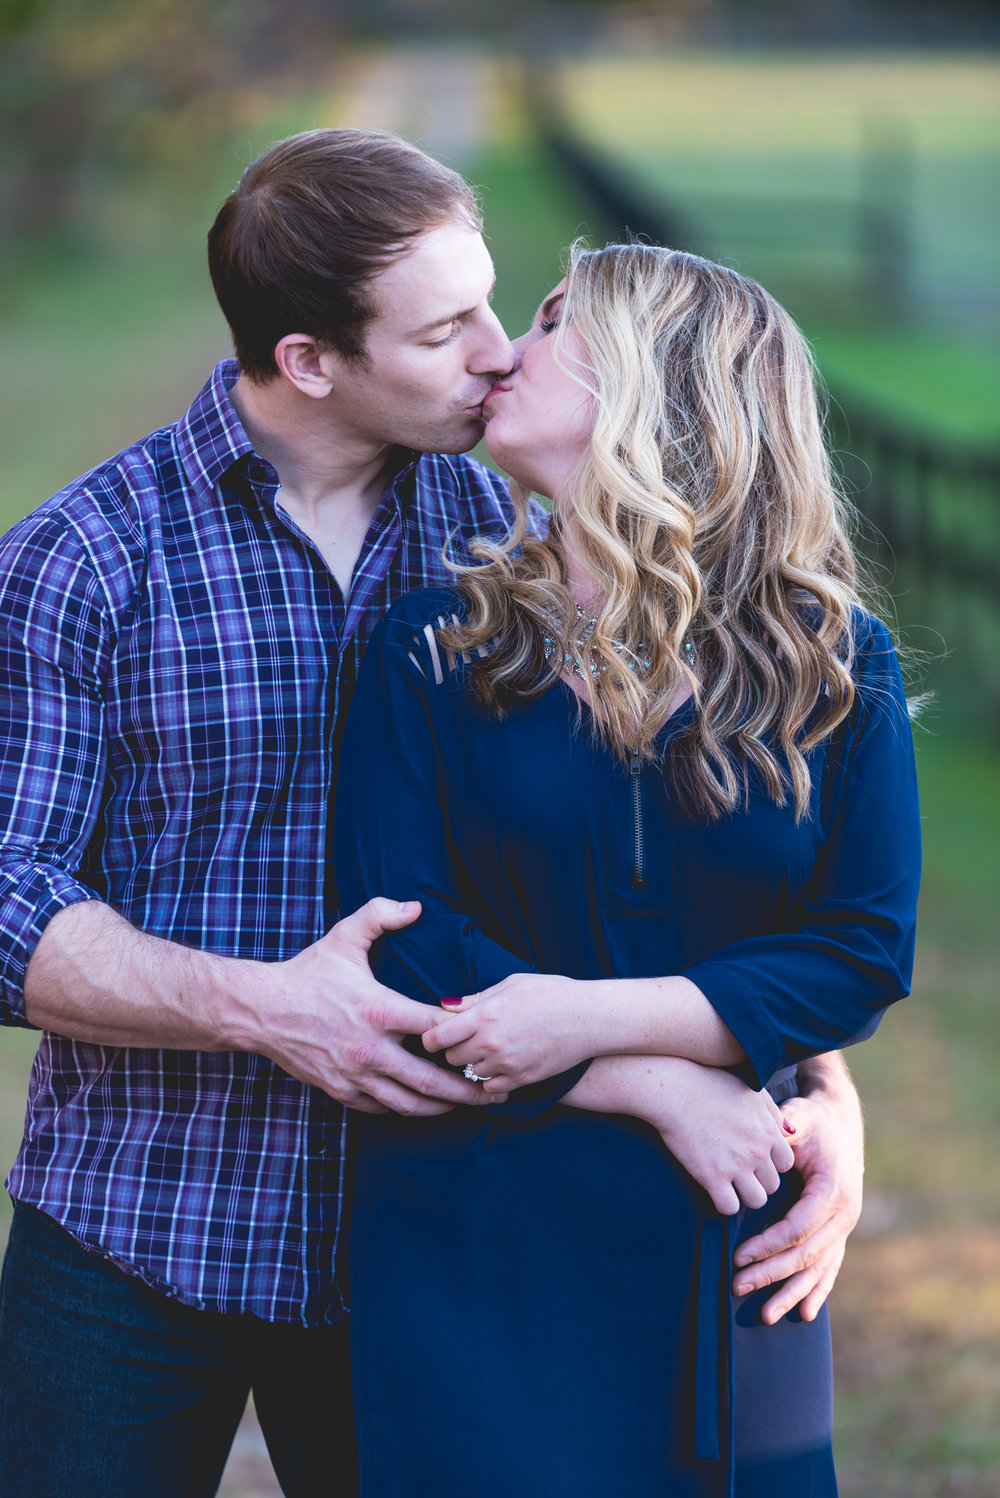 ENGAGEMENT PHOTOS | A Virginia Farm Engagement Session - Free Atkins Photography